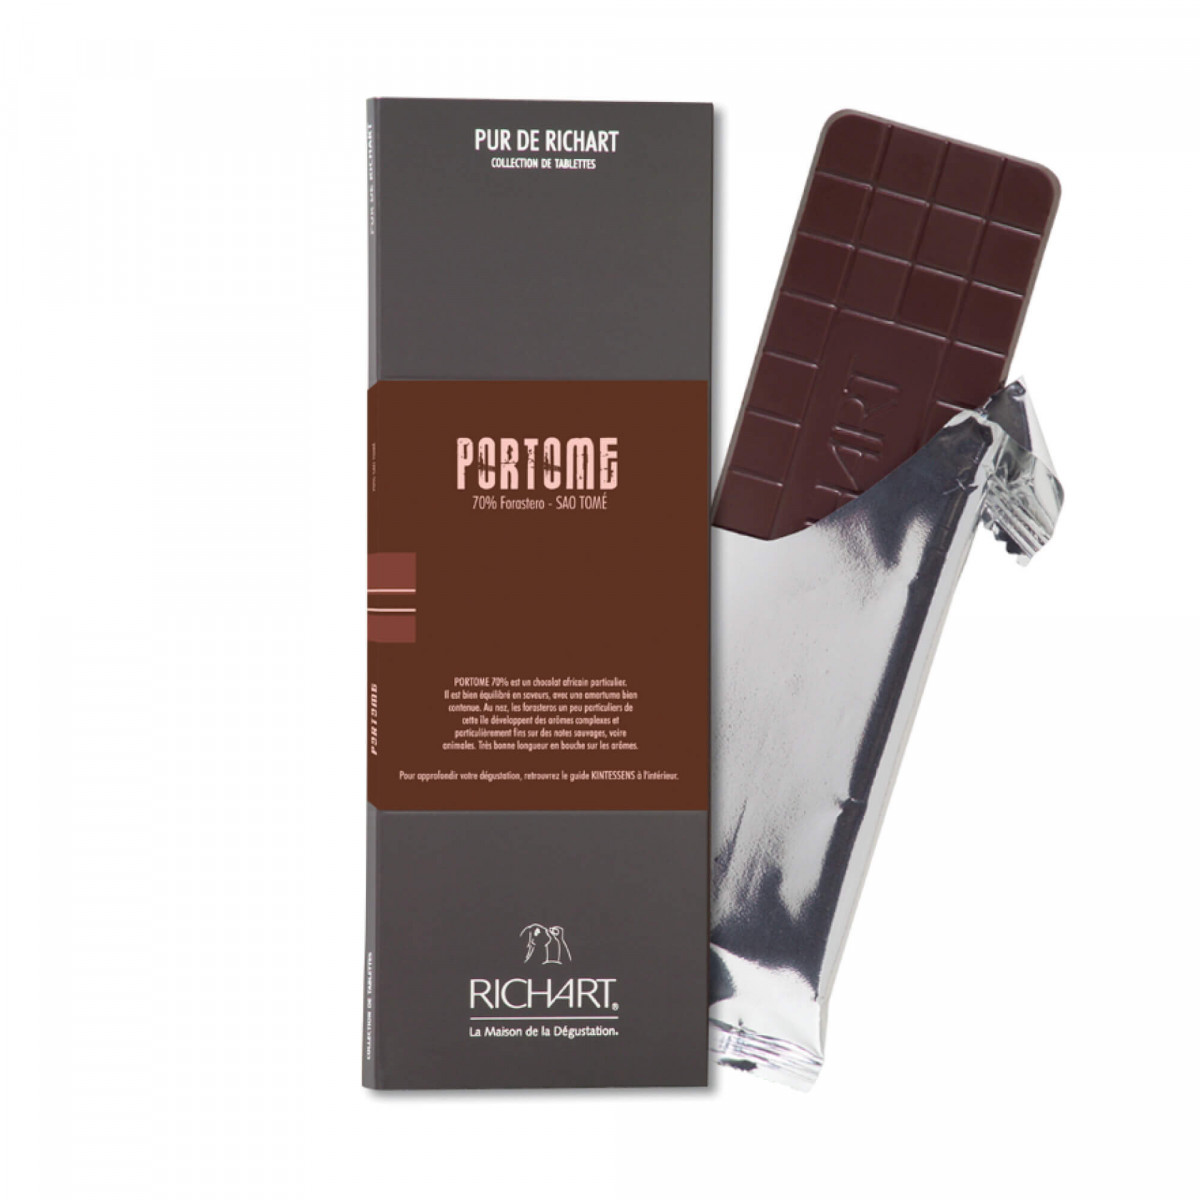 Portome 70 Dark Chocolate Bar